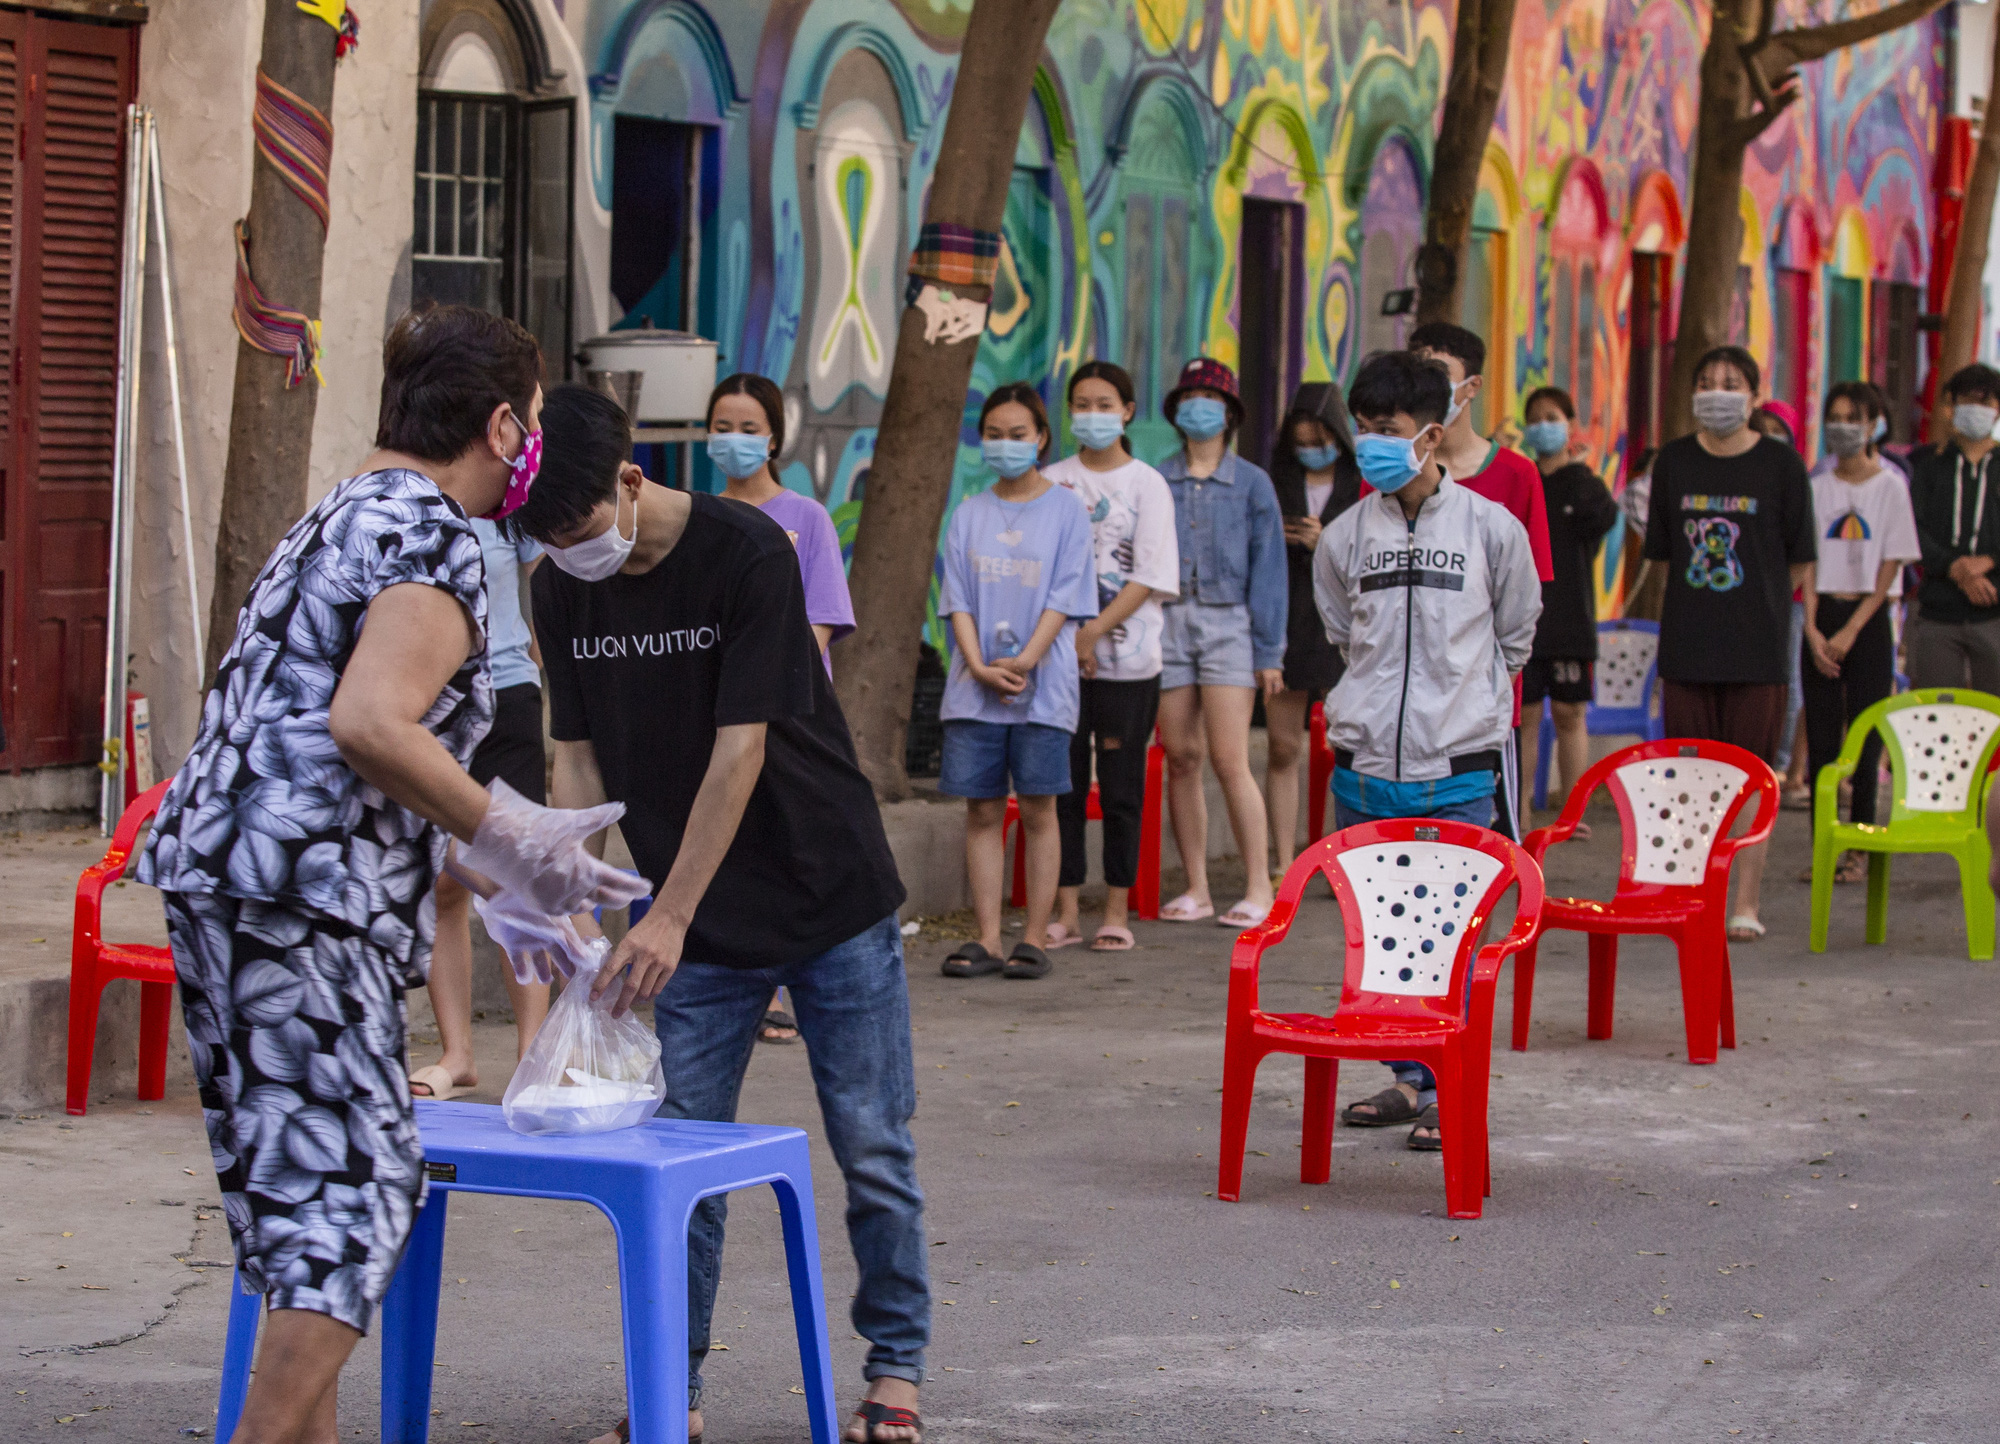 10,000 people quarantined for 15 days over one COVID-19 case in Vietnam